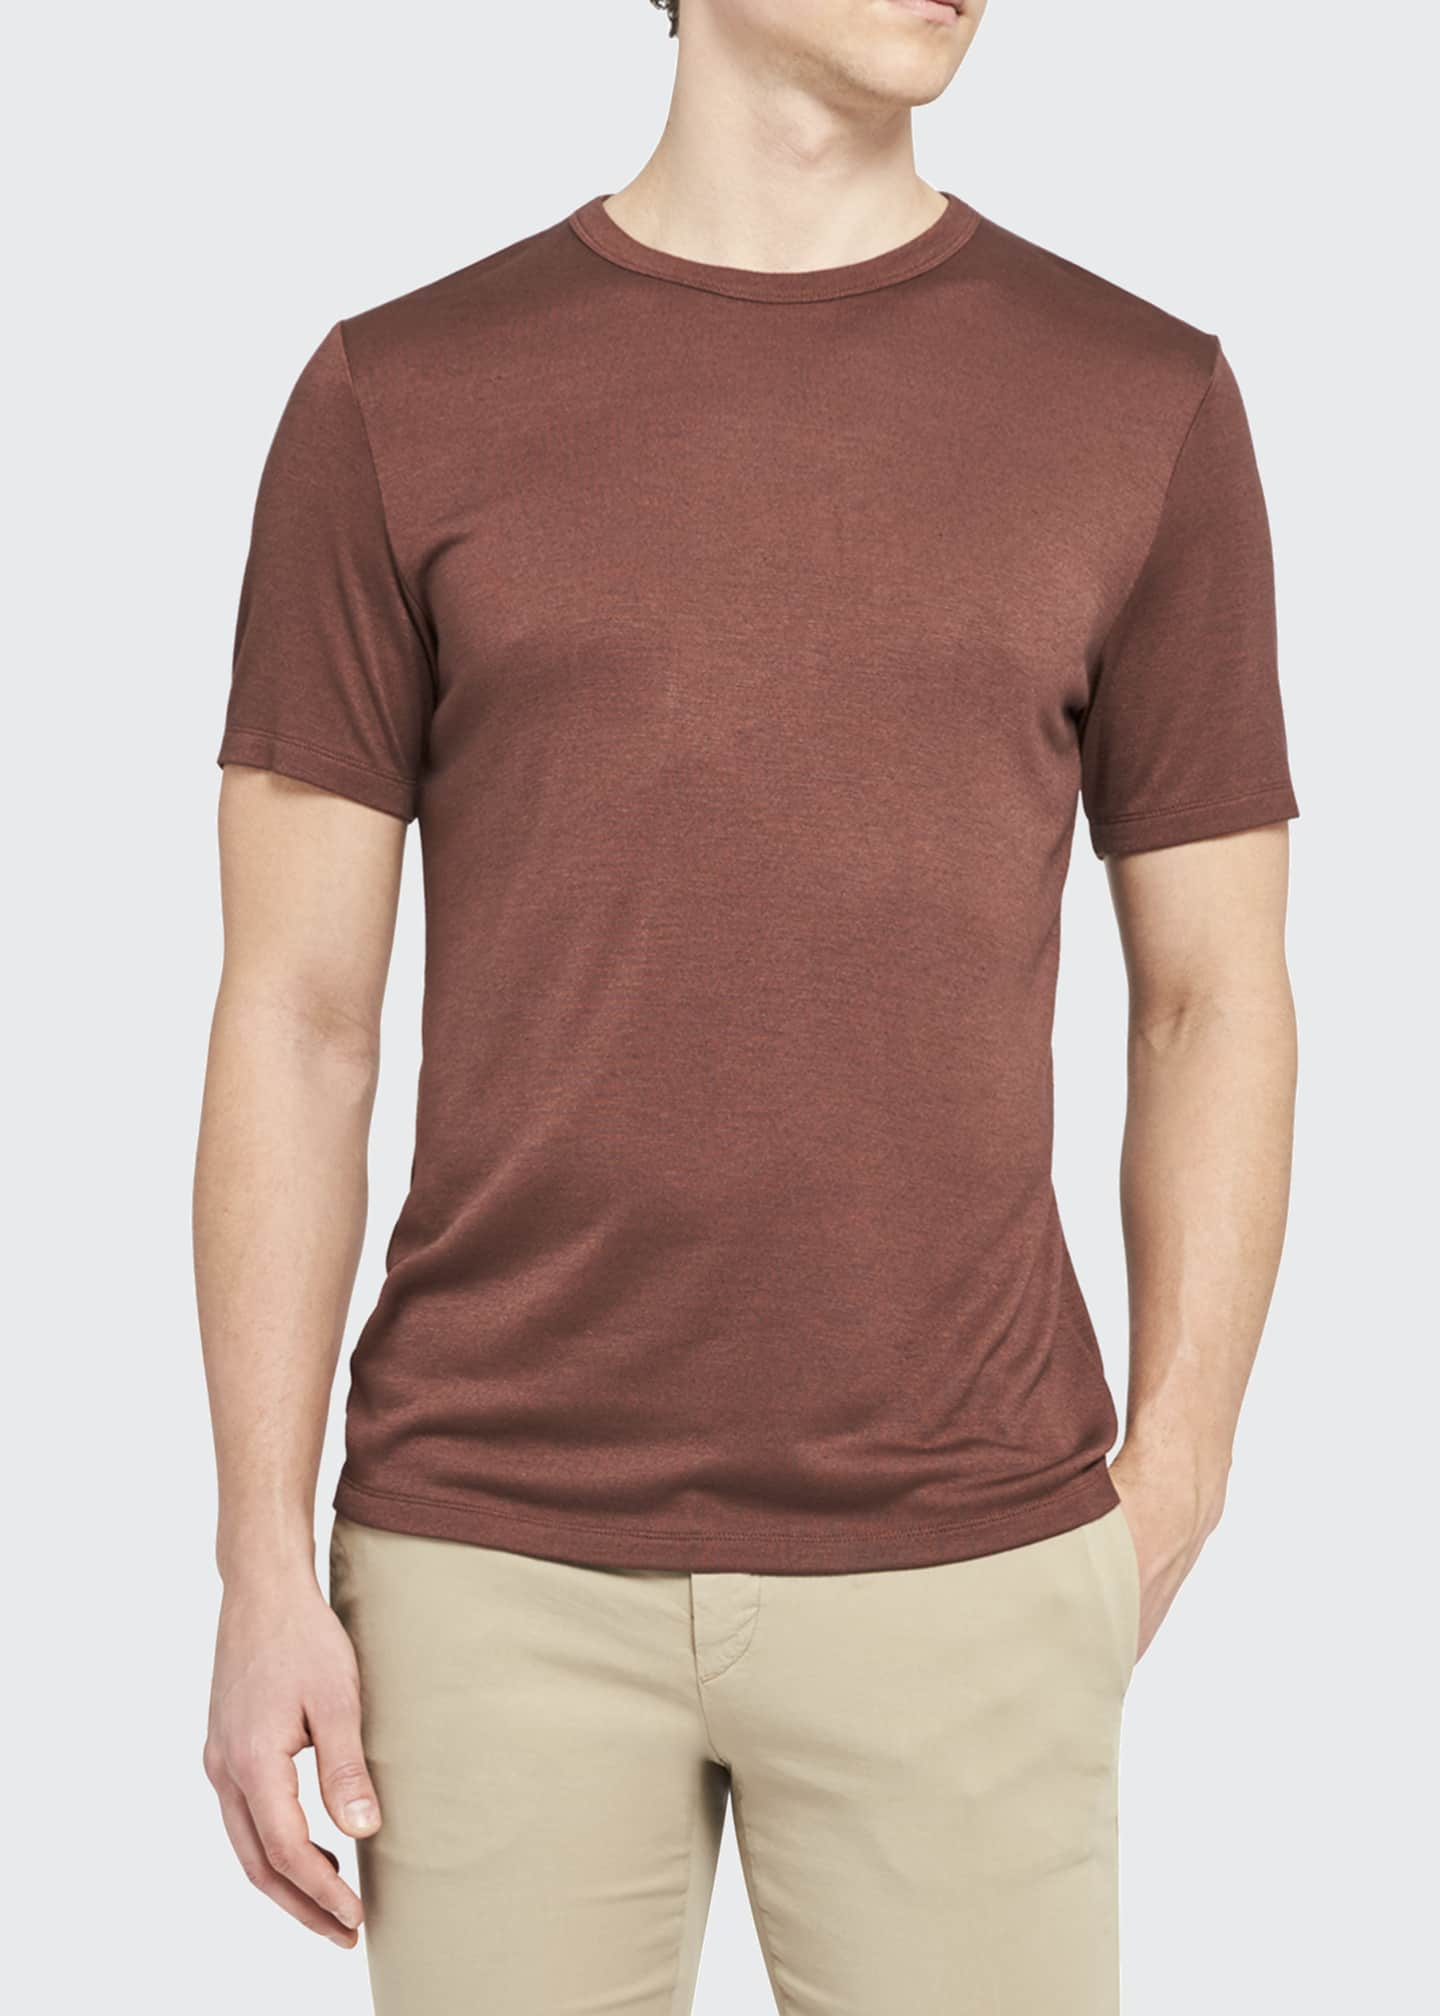 Image 1 of 3: Men's Anemone Essential T-Shirt